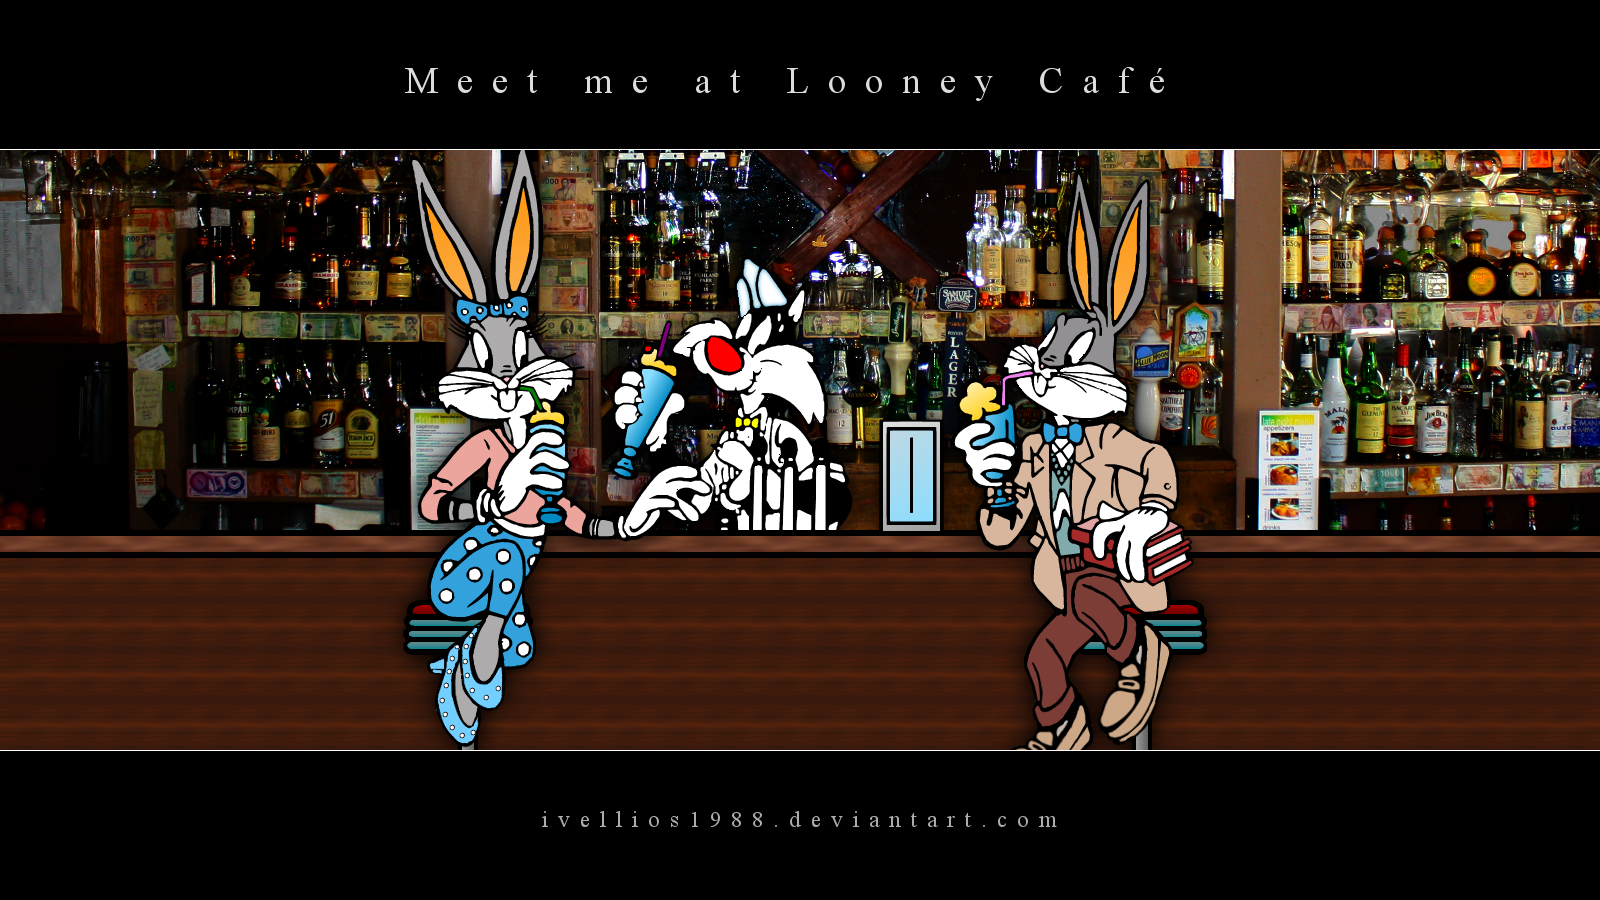 Meet me at Looney Cafe